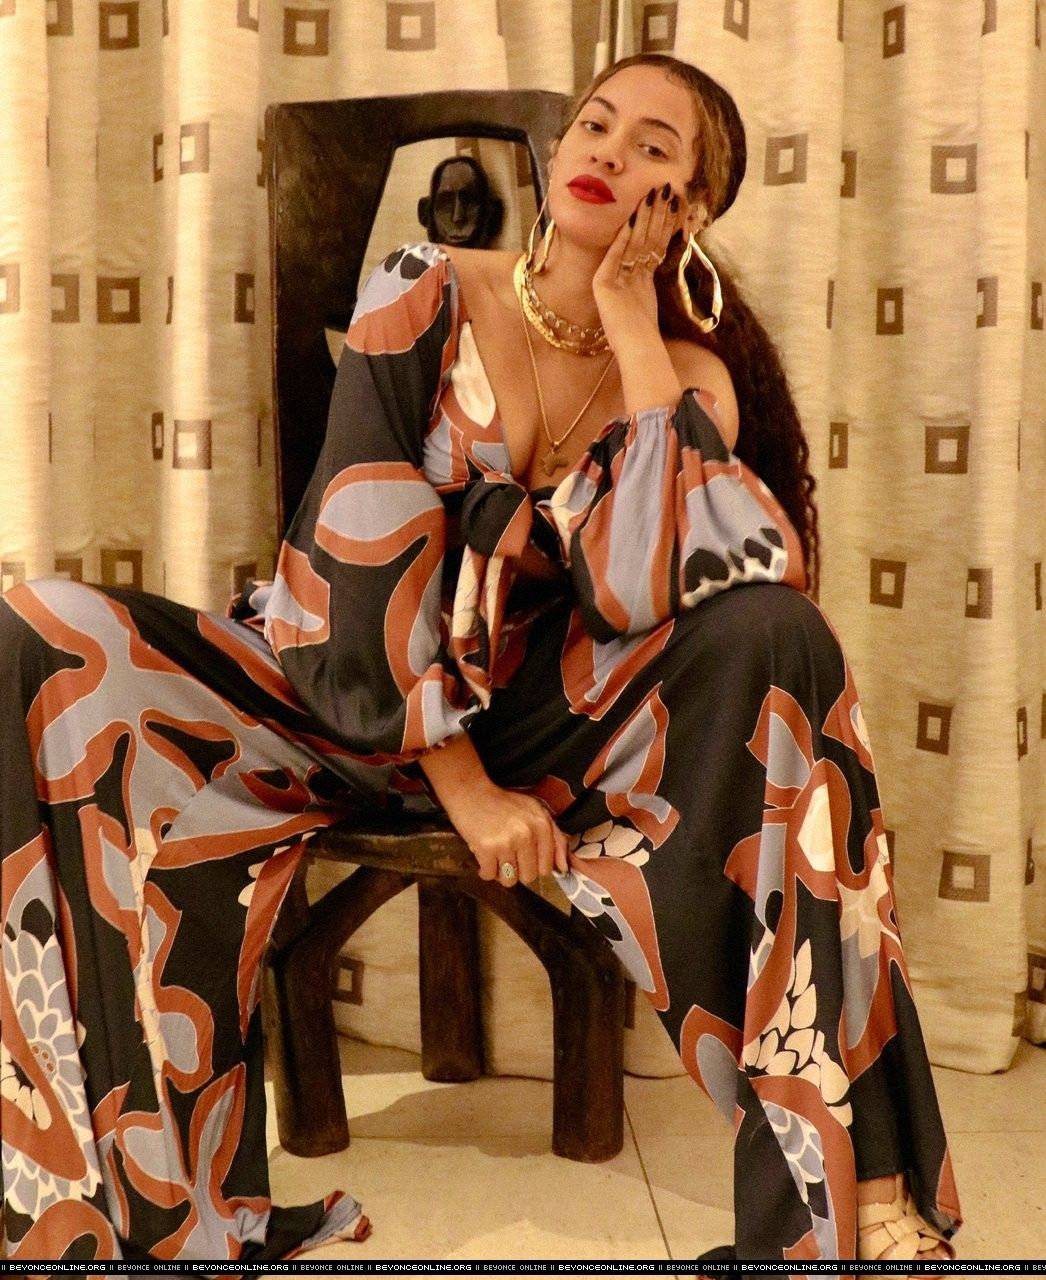 My Life Beyonce Online Photo Gallery In 2020 Beyonce Style